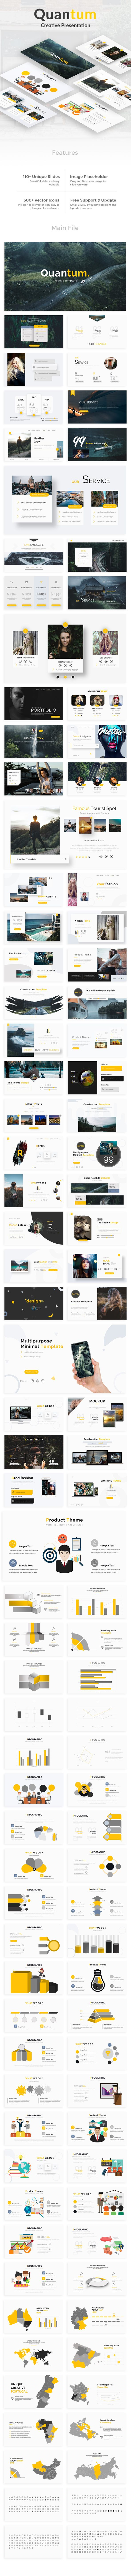 Quantum creative google slide template creative powerpoint quantum creative google slide template google slides presentation templates toneelgroepblik Image collections